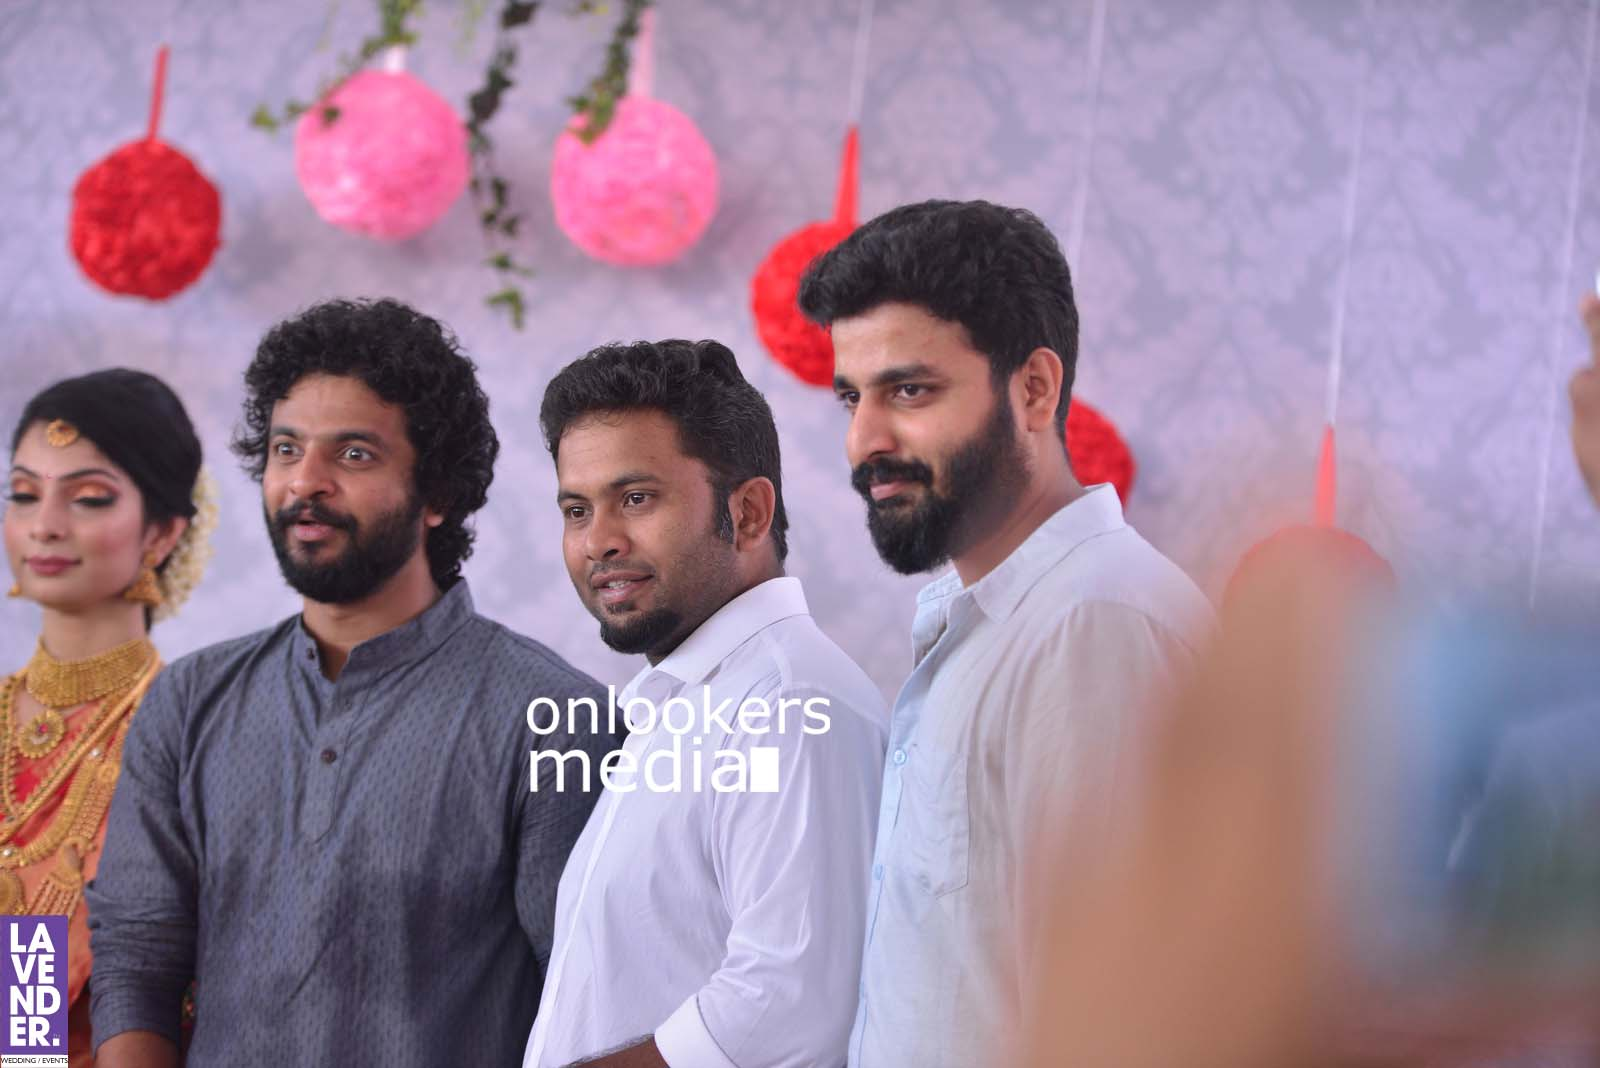 http://onlookersmedia.in/wp-content/uploads/2017/04/Dhyan-Sreenivasan-Wedding-Stills-Photos-44.jpg